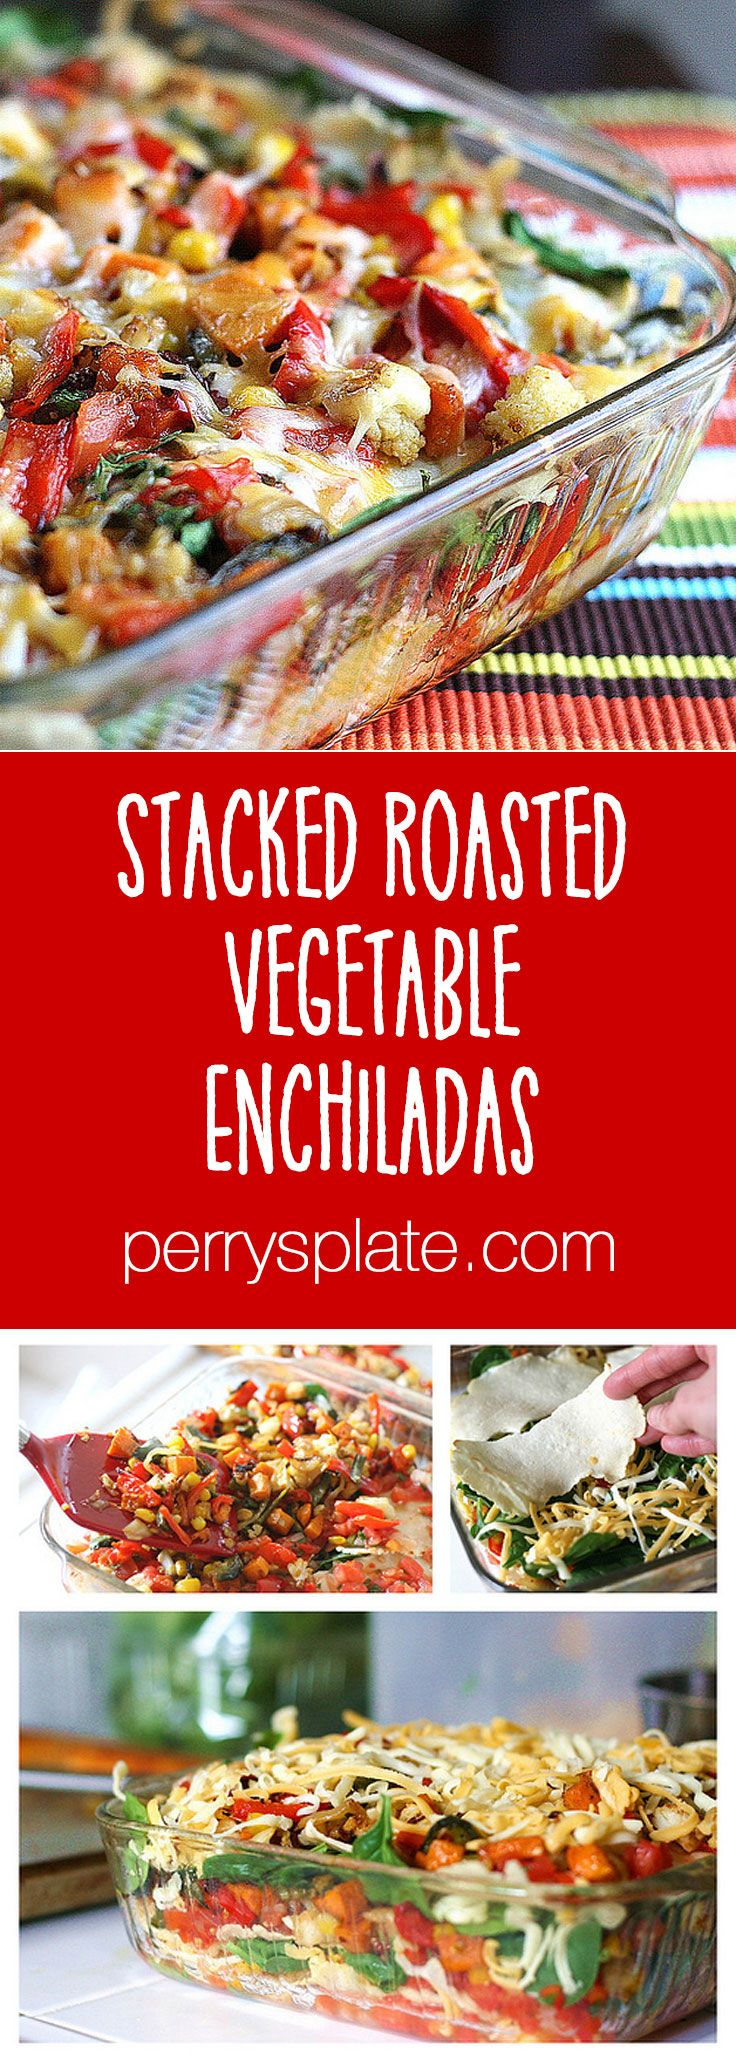 Stacked Roasted Vegetable Enchiladas | enchilada r…